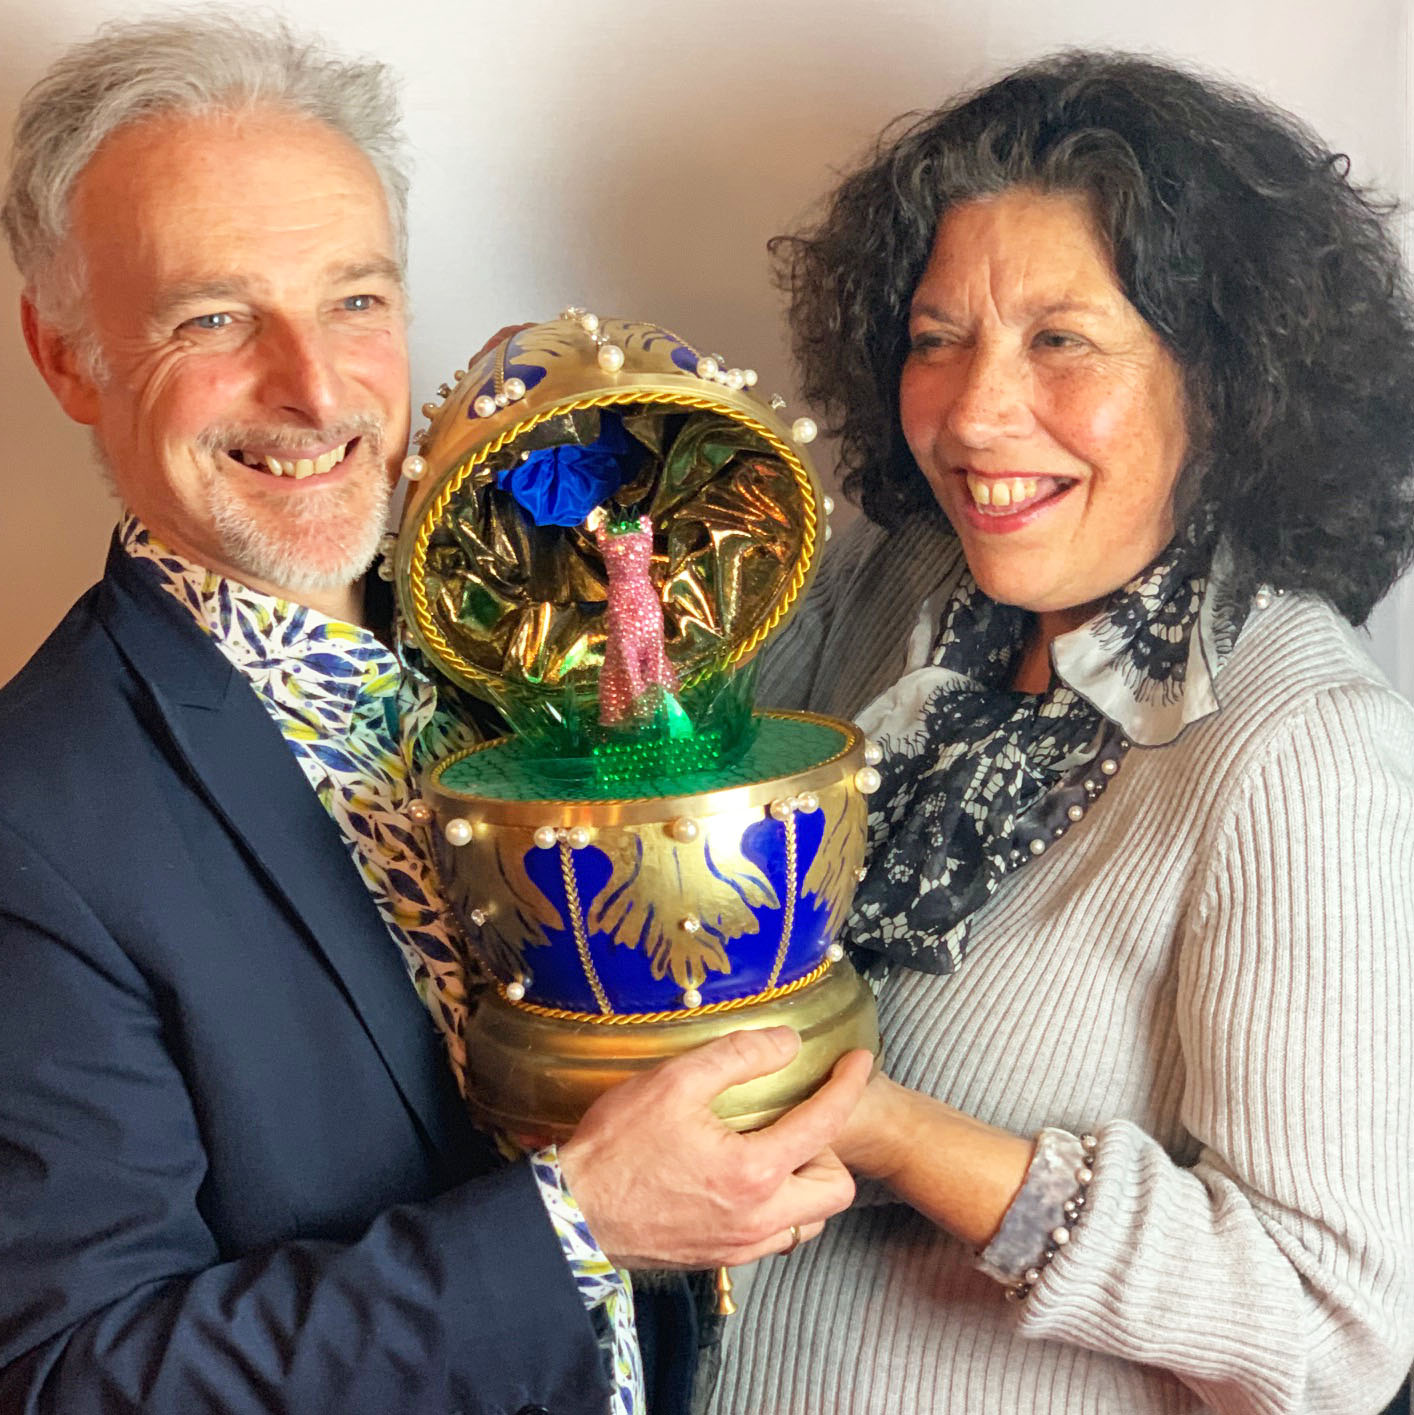 Nicholas Wylde and Jane Knapp presenting their finished Wylde faberge egg style egg